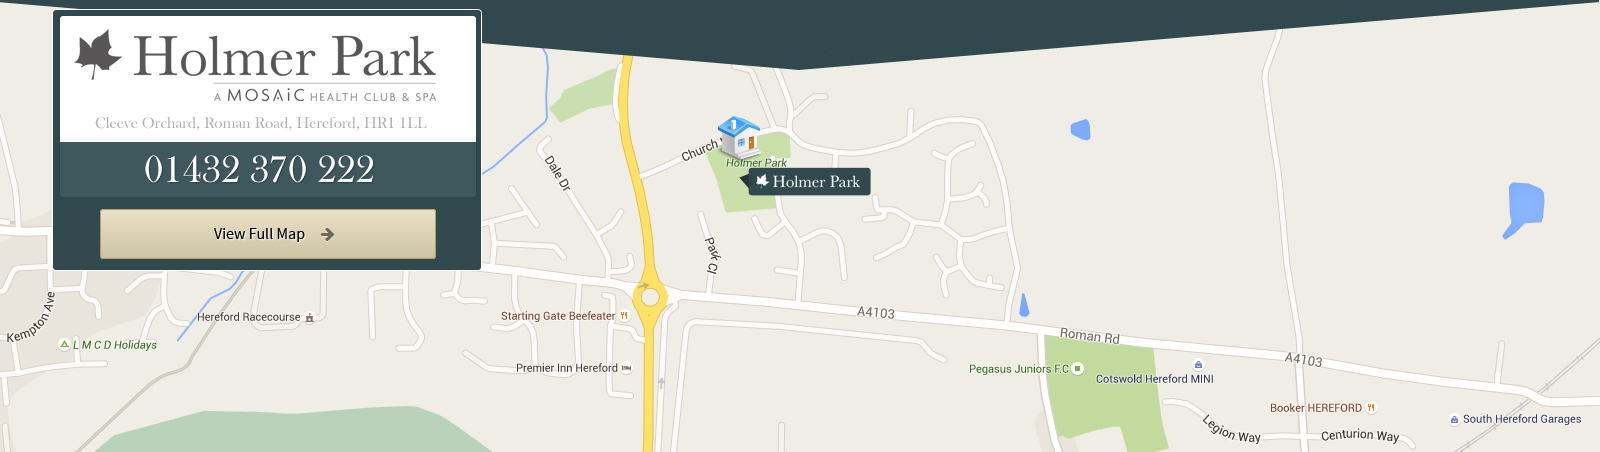 Map of Holmer Park health club